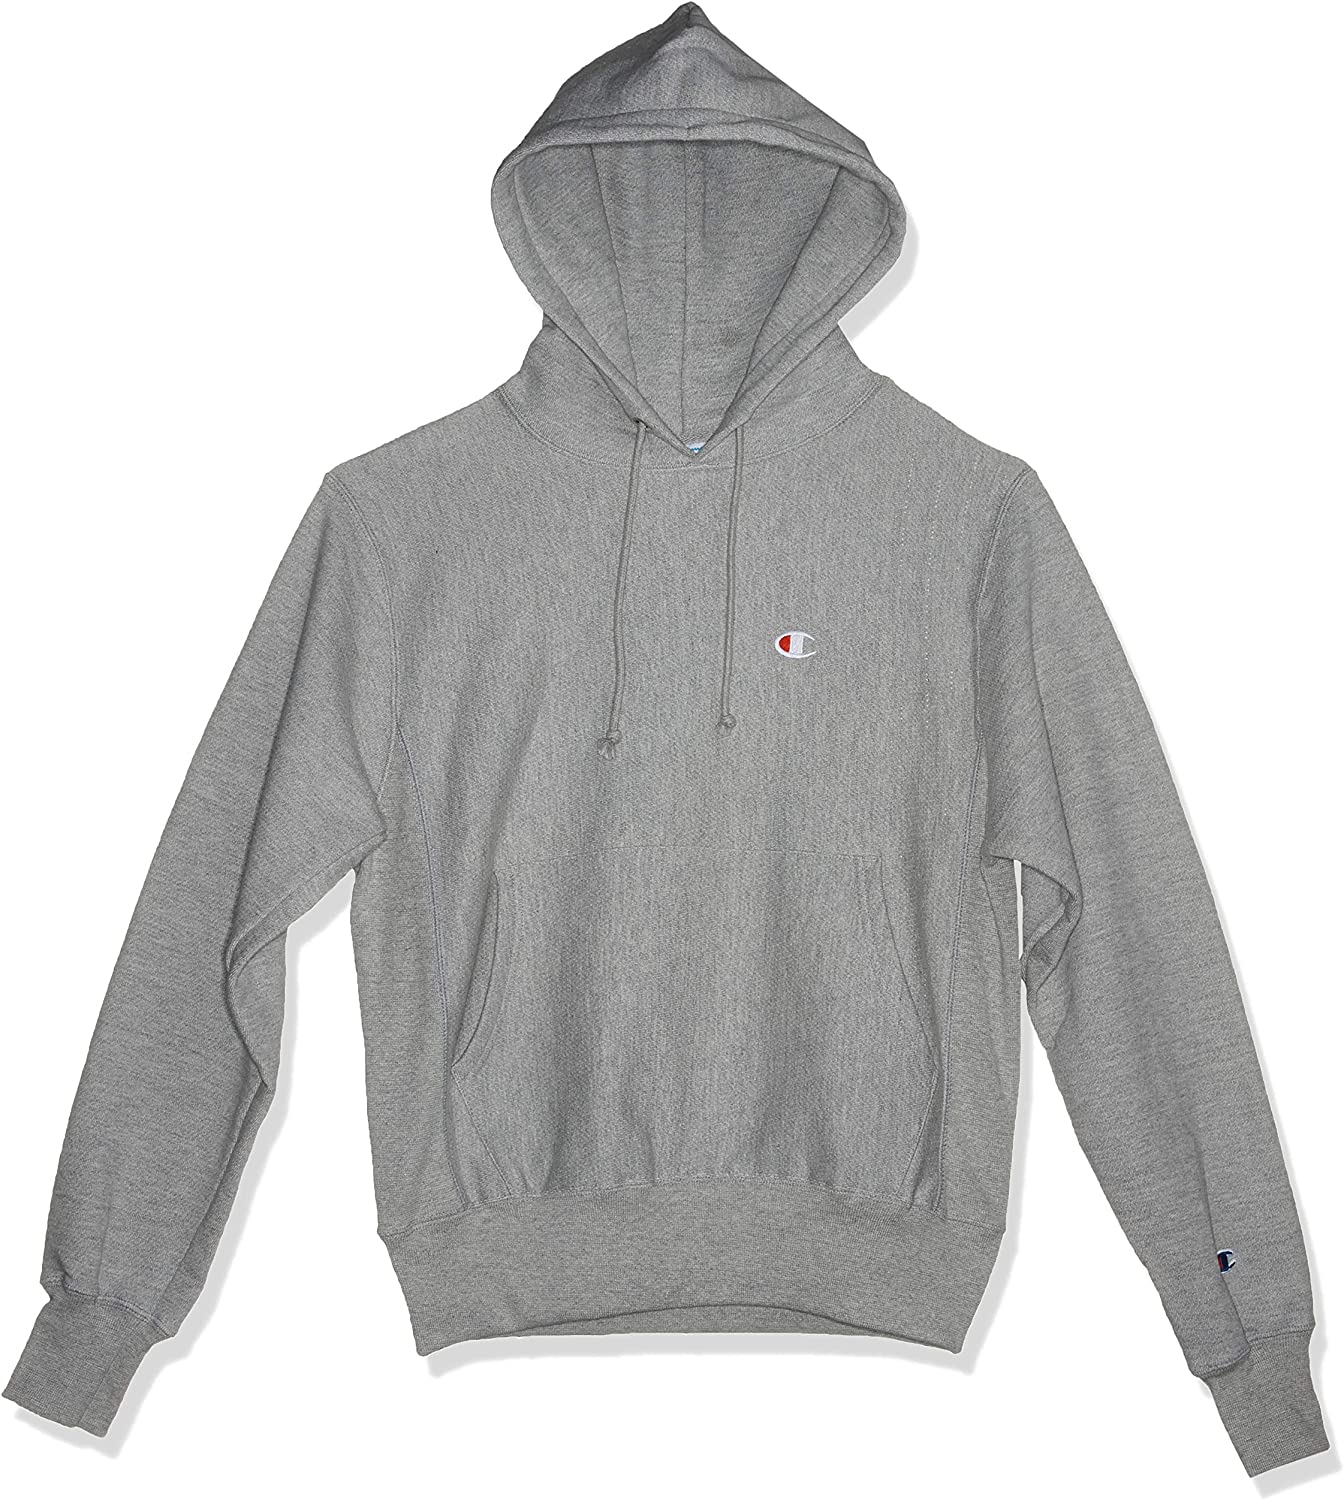 Champion LIFE Men's Reverse Weave Pullover Hoodie: CHAMPION: Clothing